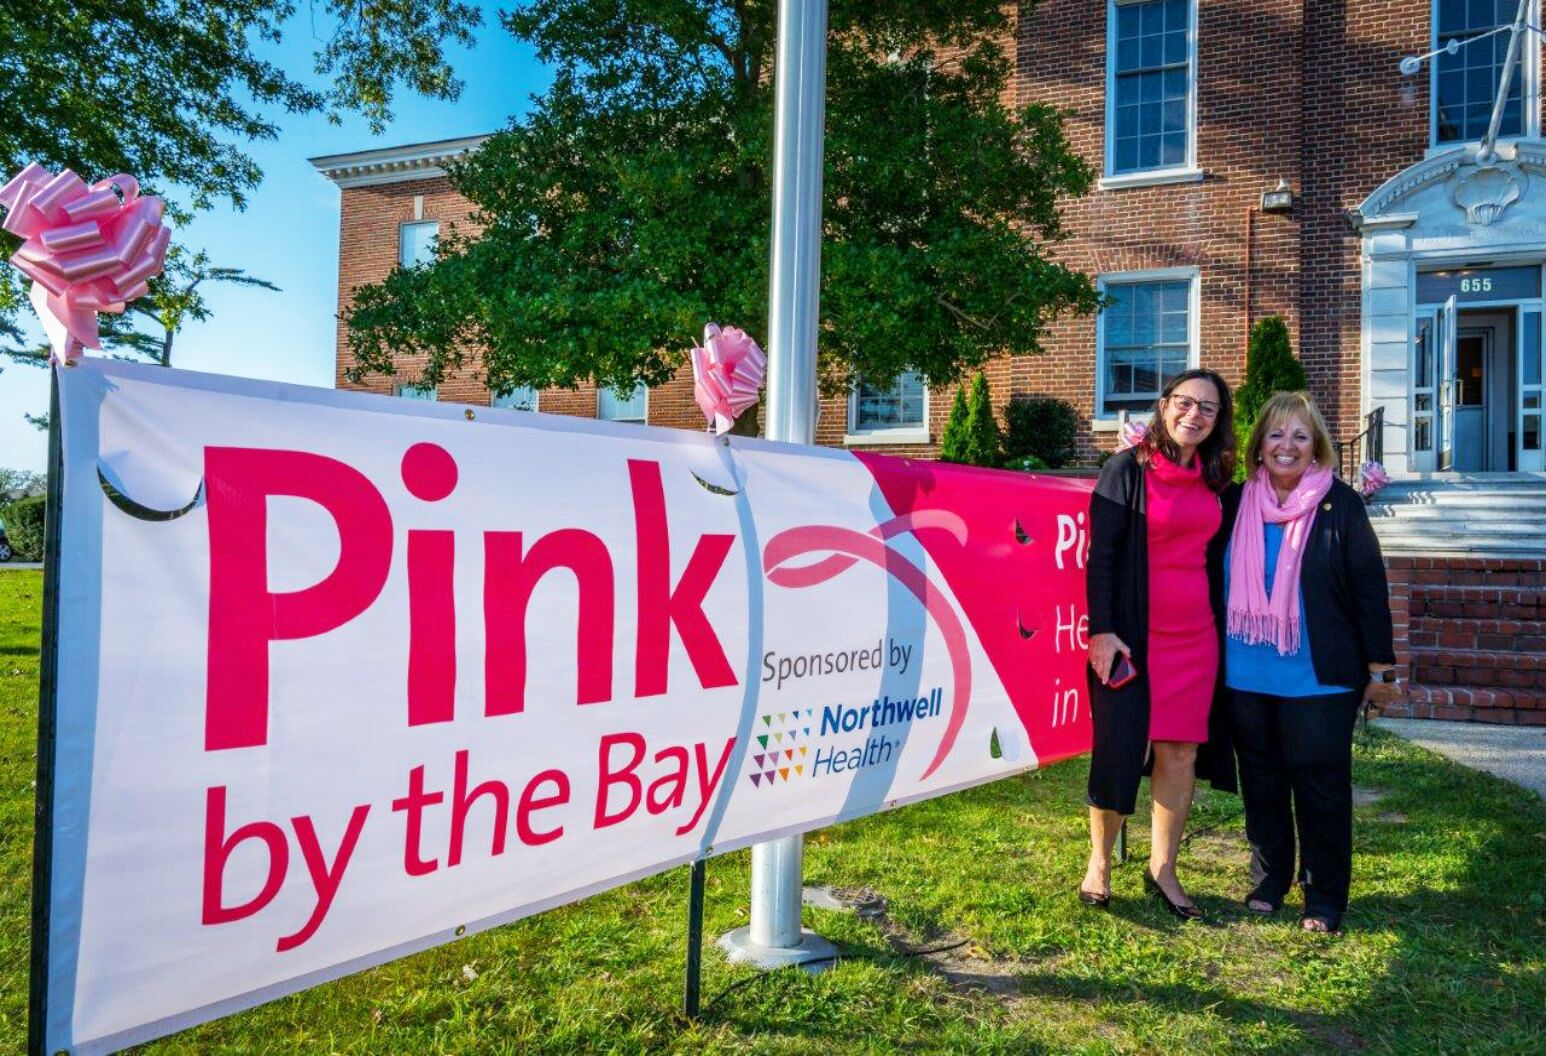 Southside Hospital Executive Director Donna Moravick, NP, with Town of Islip Supervisor Angie Carpenter commemorating Pink by the Bay.